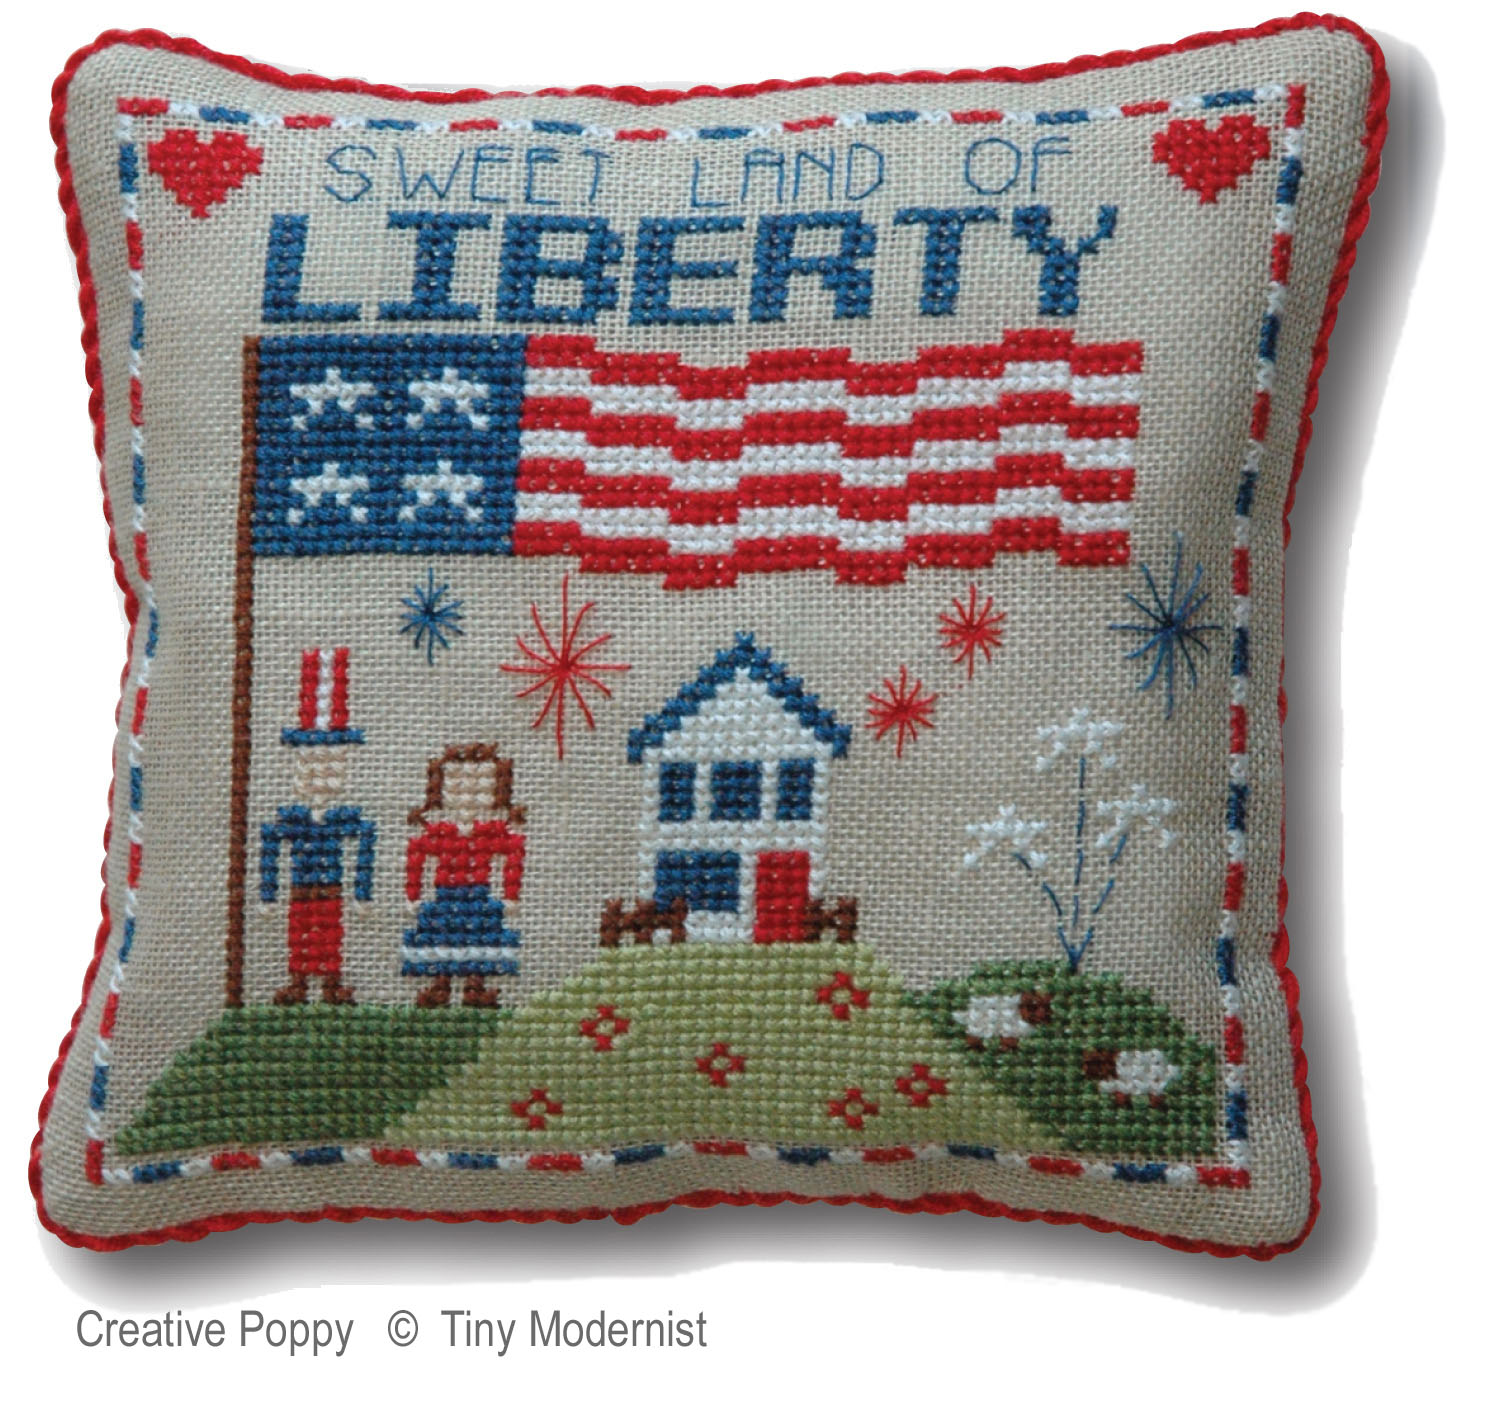 Liberty Pillow cross stitch pattern by Tiny Modernist